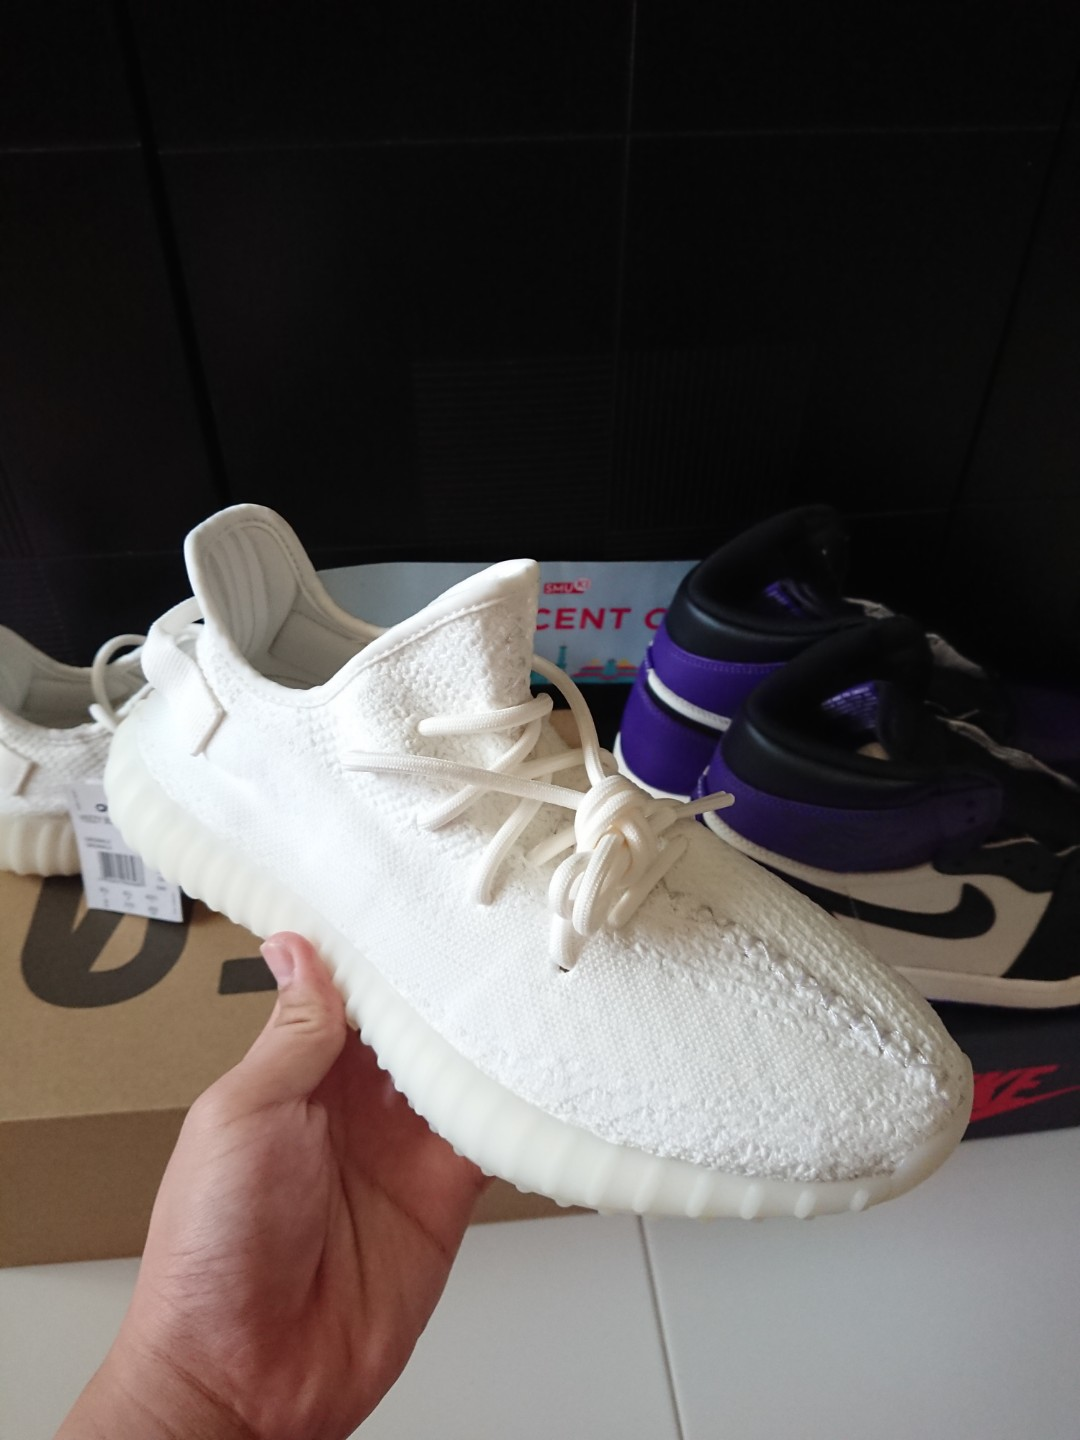 finest selection a5e3c 941bd Adidas Yeezy Boost 350 V2 Triple white